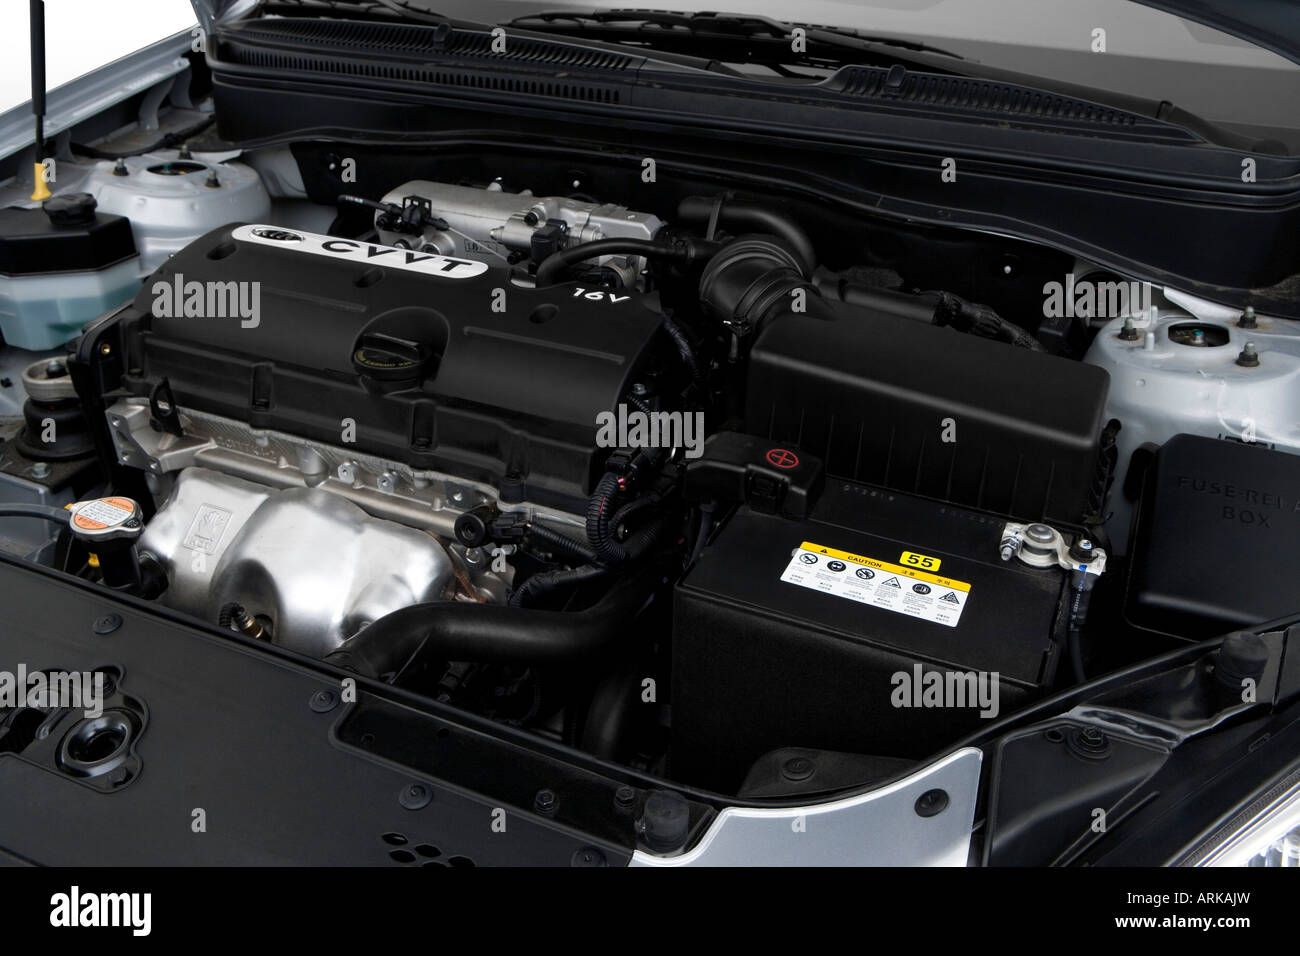 2008 Kia Rio in Silver - Engine - Stock Image